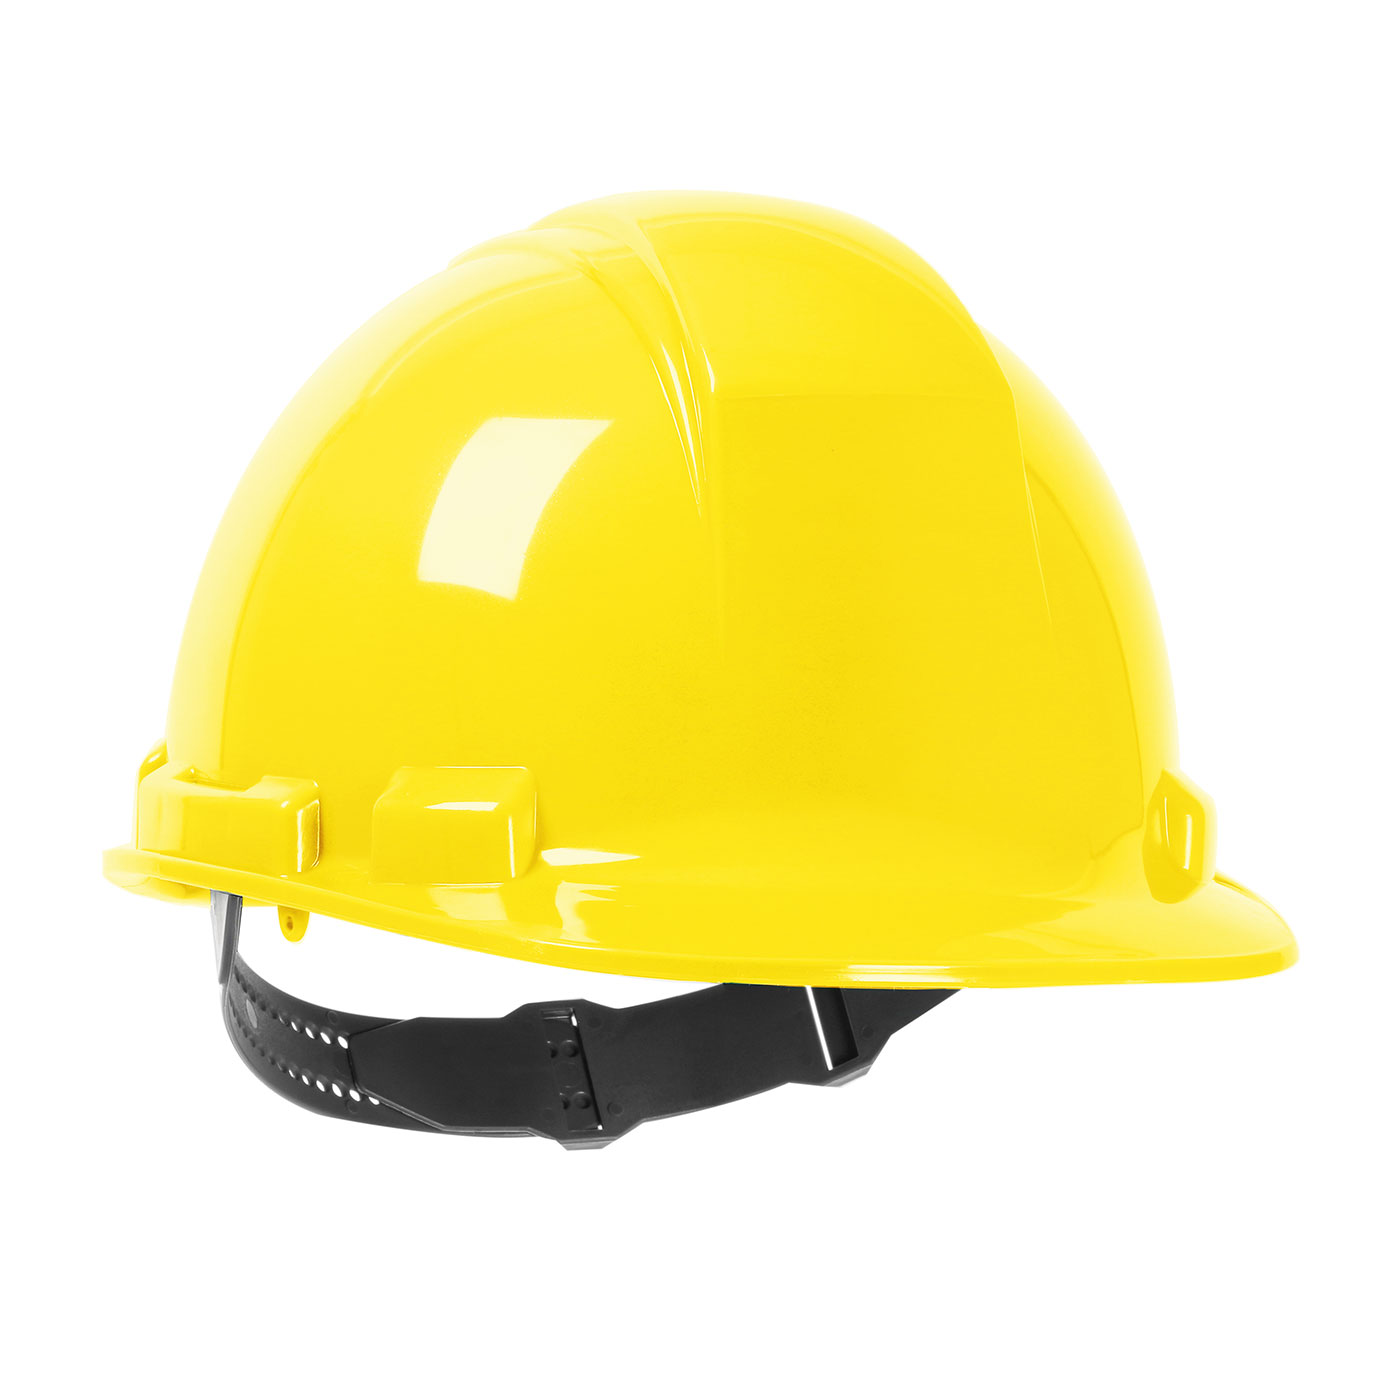 280-HP241 PIP® Dynamic Whistler™ Cap Style Hard Hat with HDPE Shell, 4-Point Textile Suspension and Pin-Lock Adjustment - Yellow